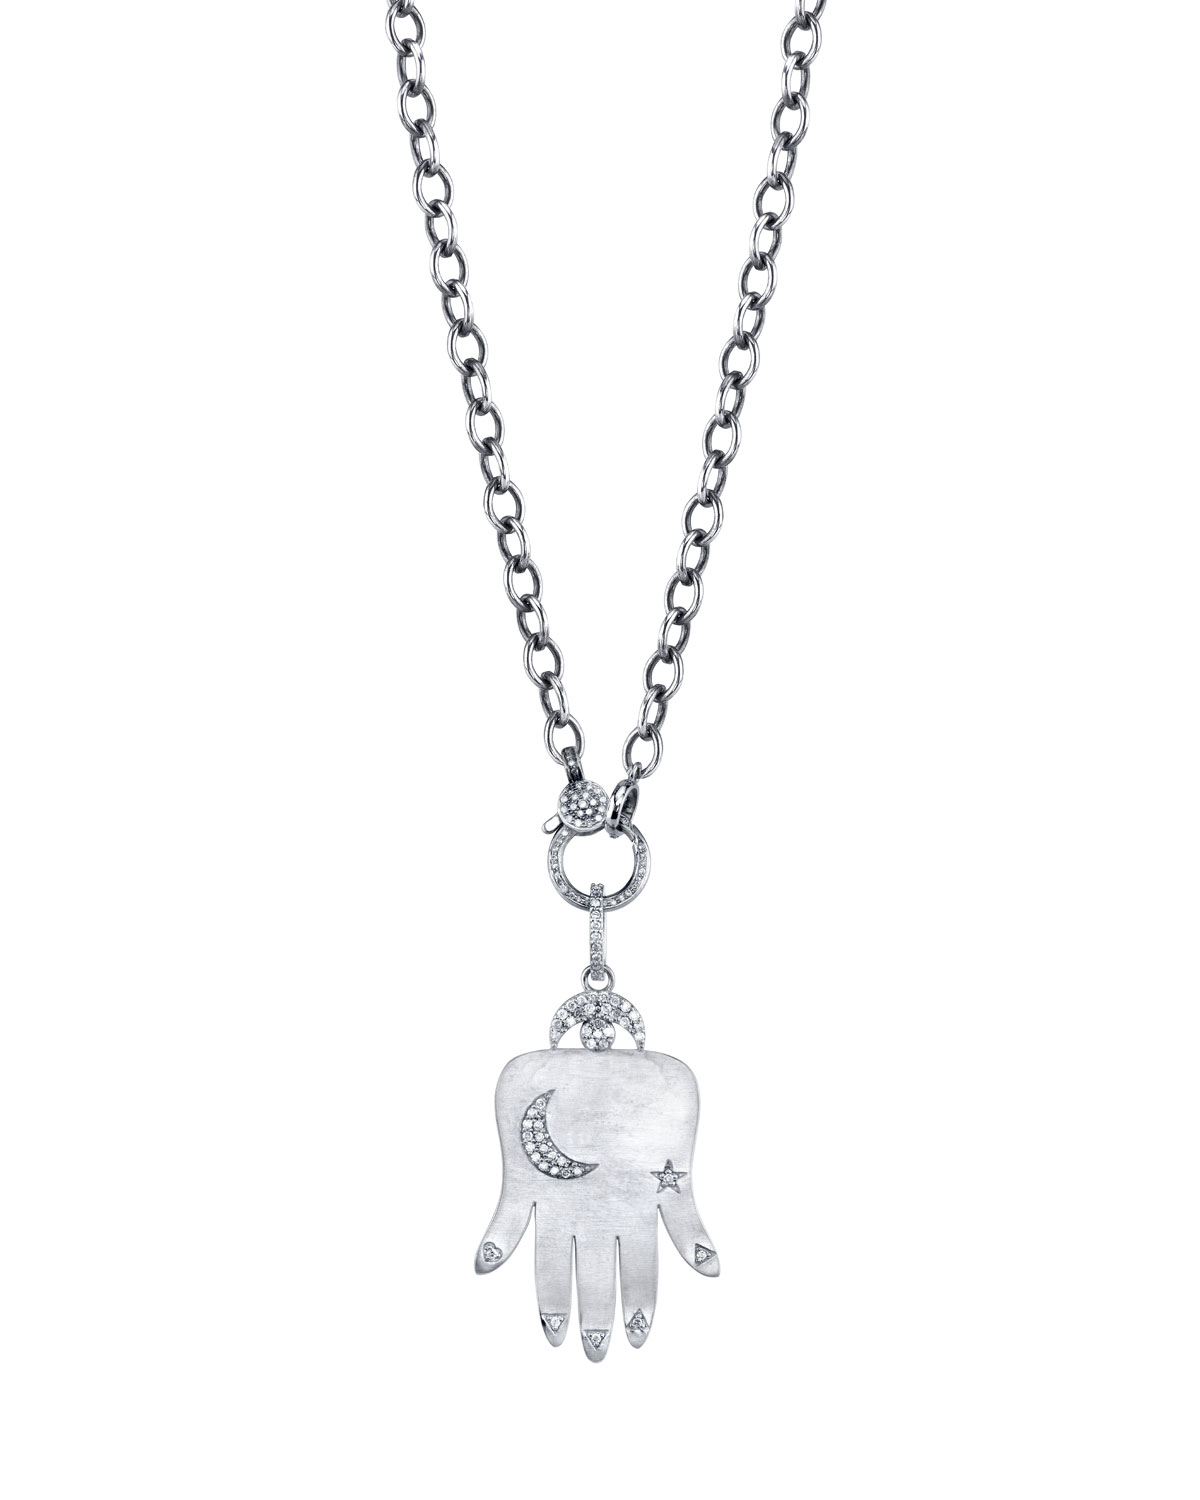 DIAMOND HAND OF FORTUNE NECKLACE